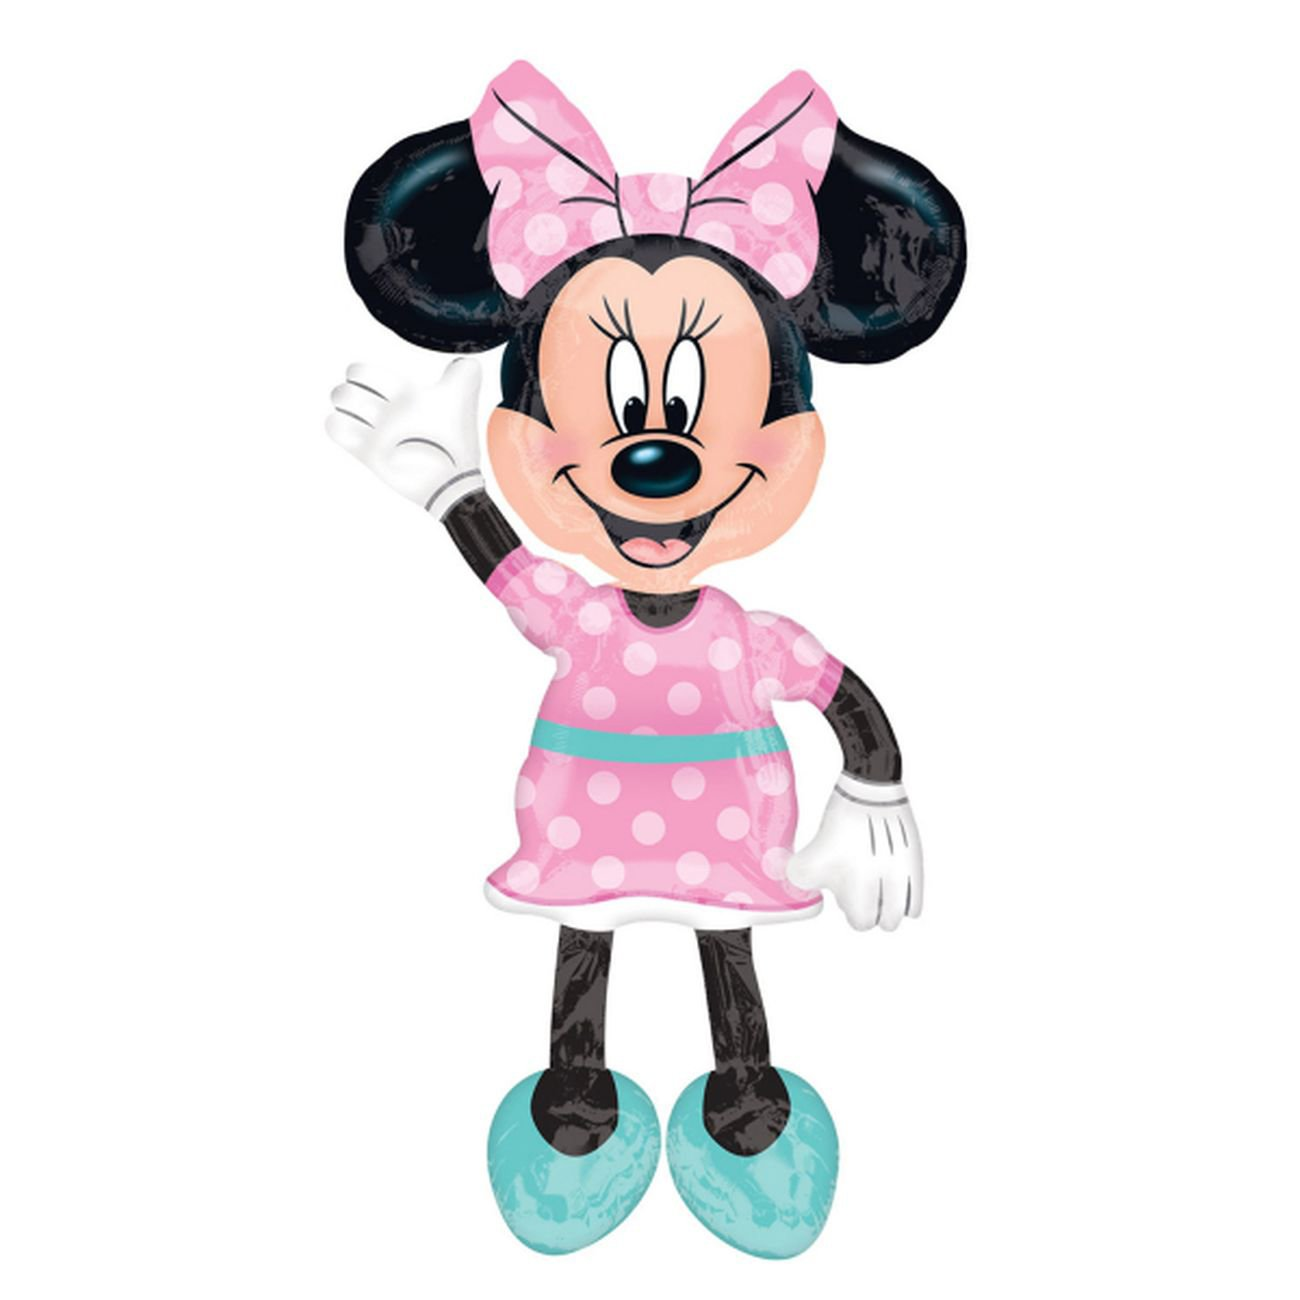 Minnie Mouse Kids Birthday Party Air Walker Balloon - Foil 54 Mayflower 3433101